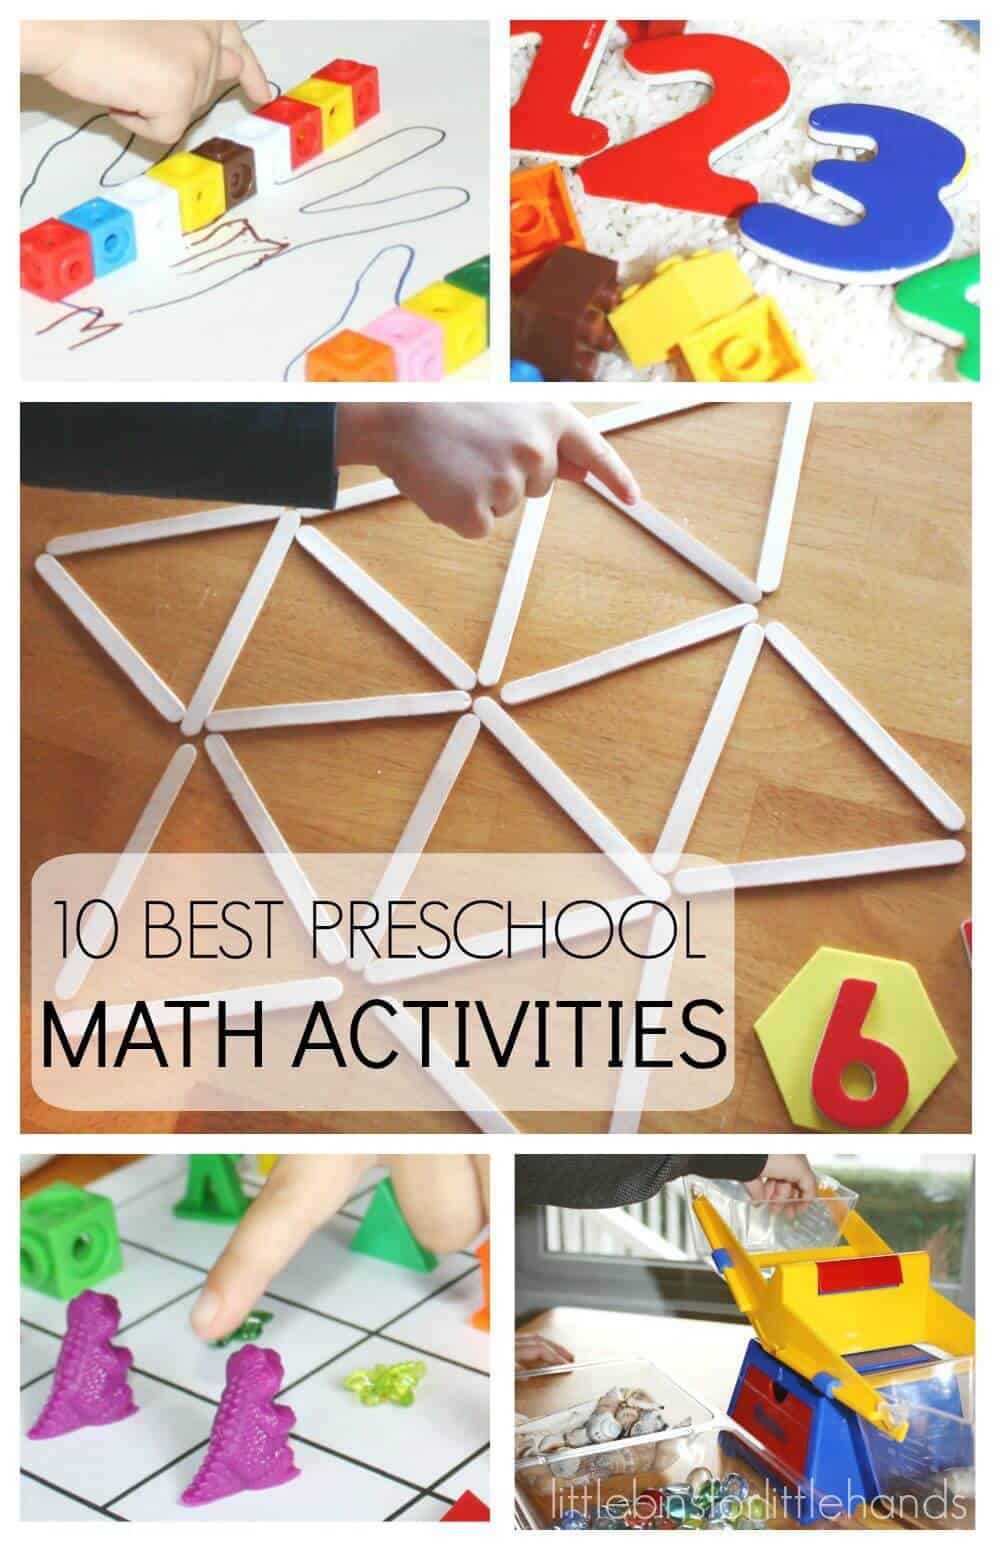 10 Back To School Preschool Math Activities for Kids